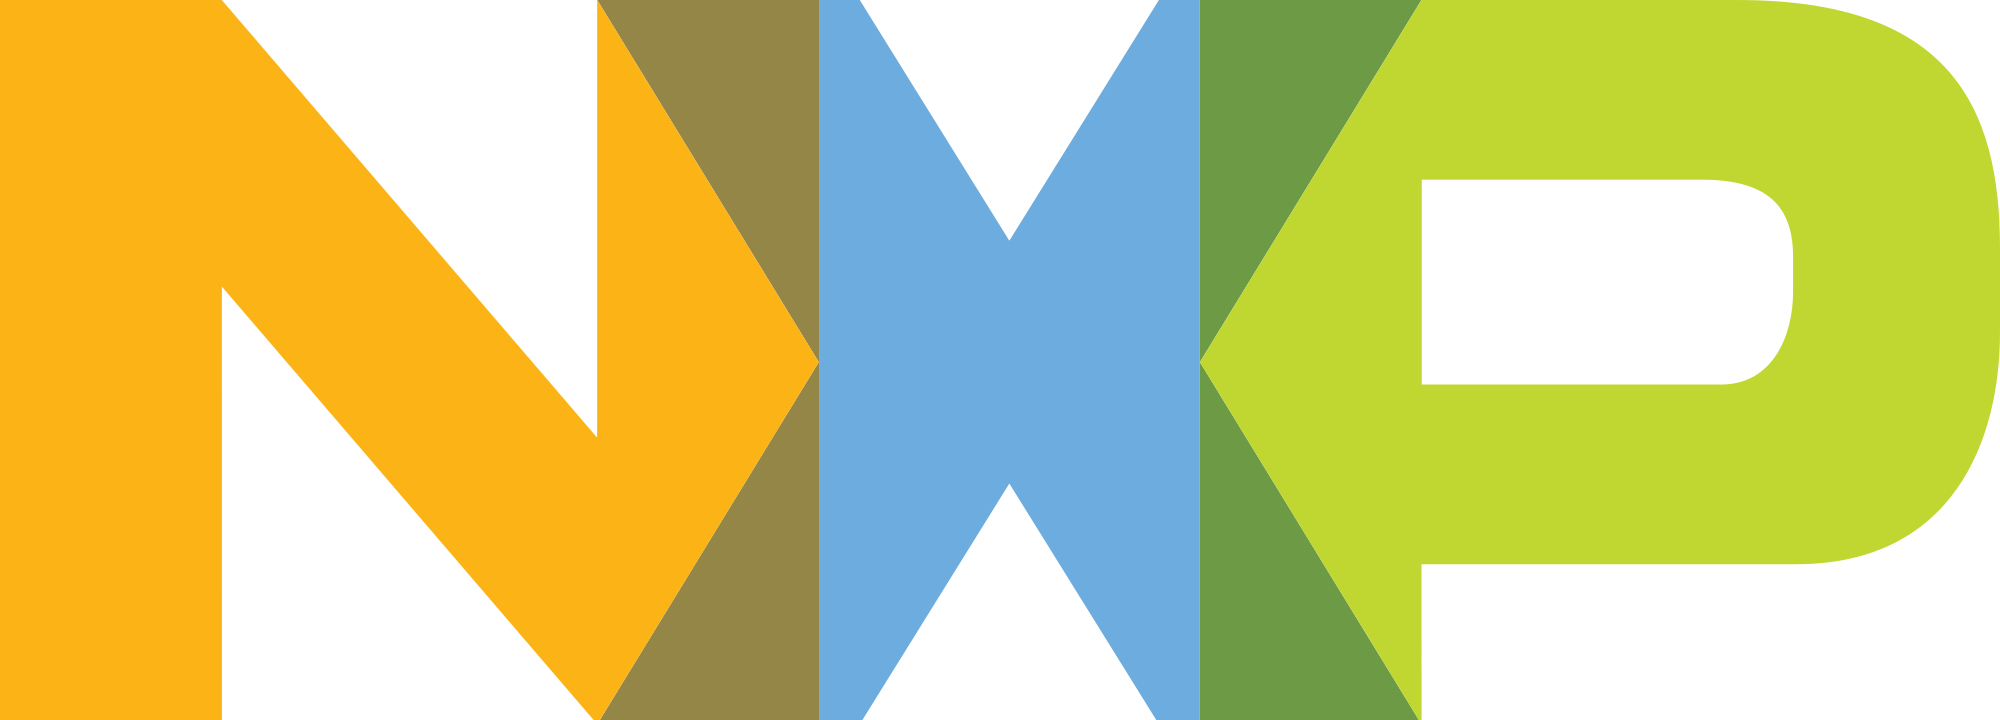 NXP Semiconductors Logo